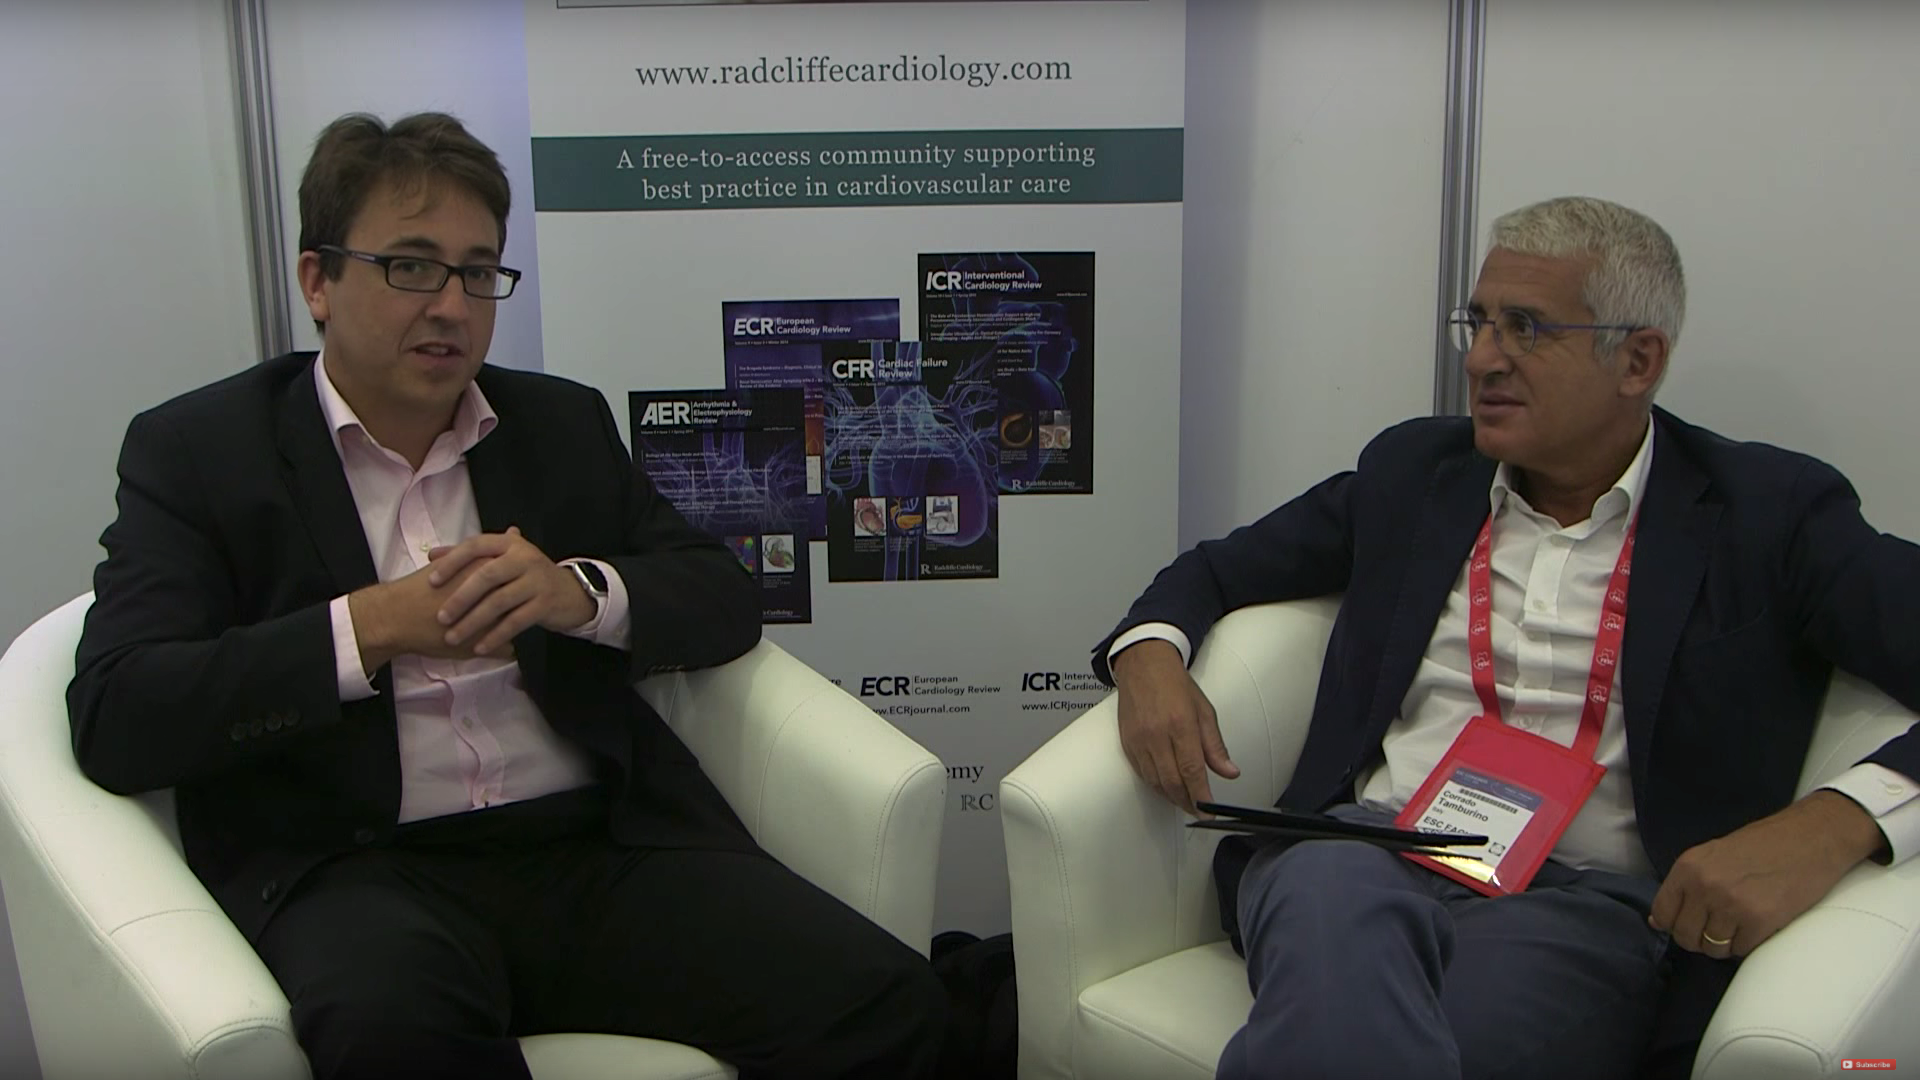 ESC 2015: IVUS For BVS Implants discuss with Justin Davies and Corrado Tamburino